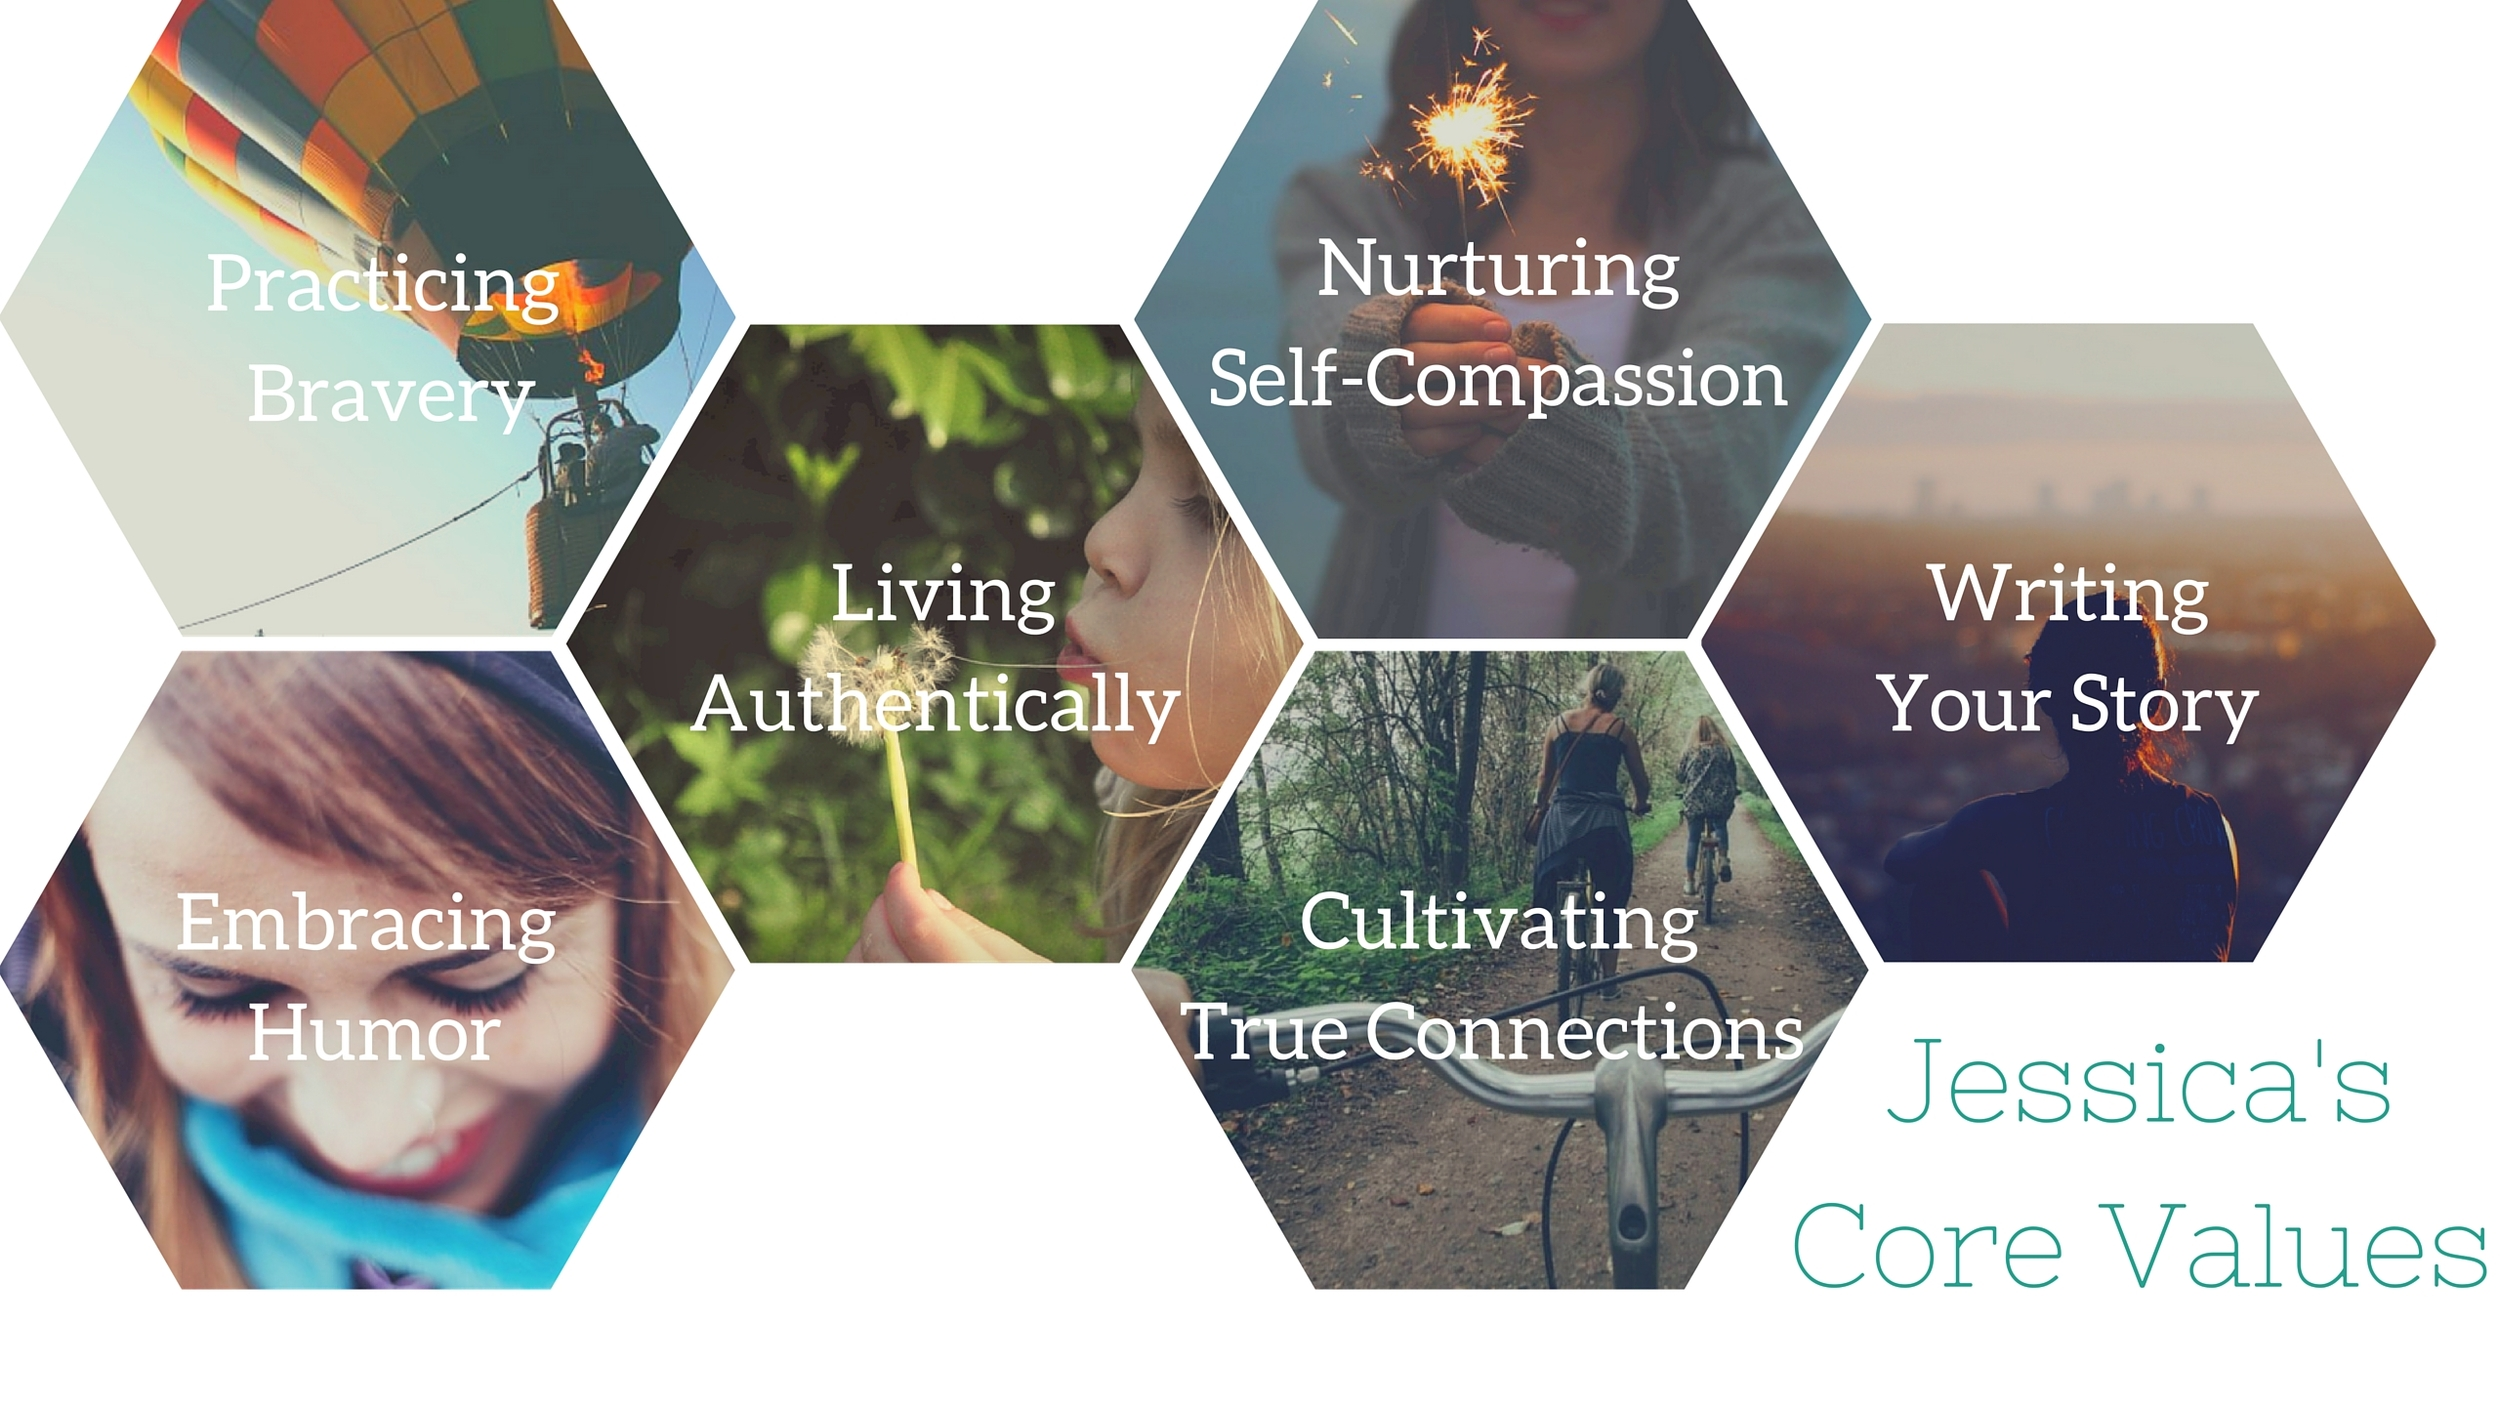 Jessica McCoy Core Values | Nashville Therapy